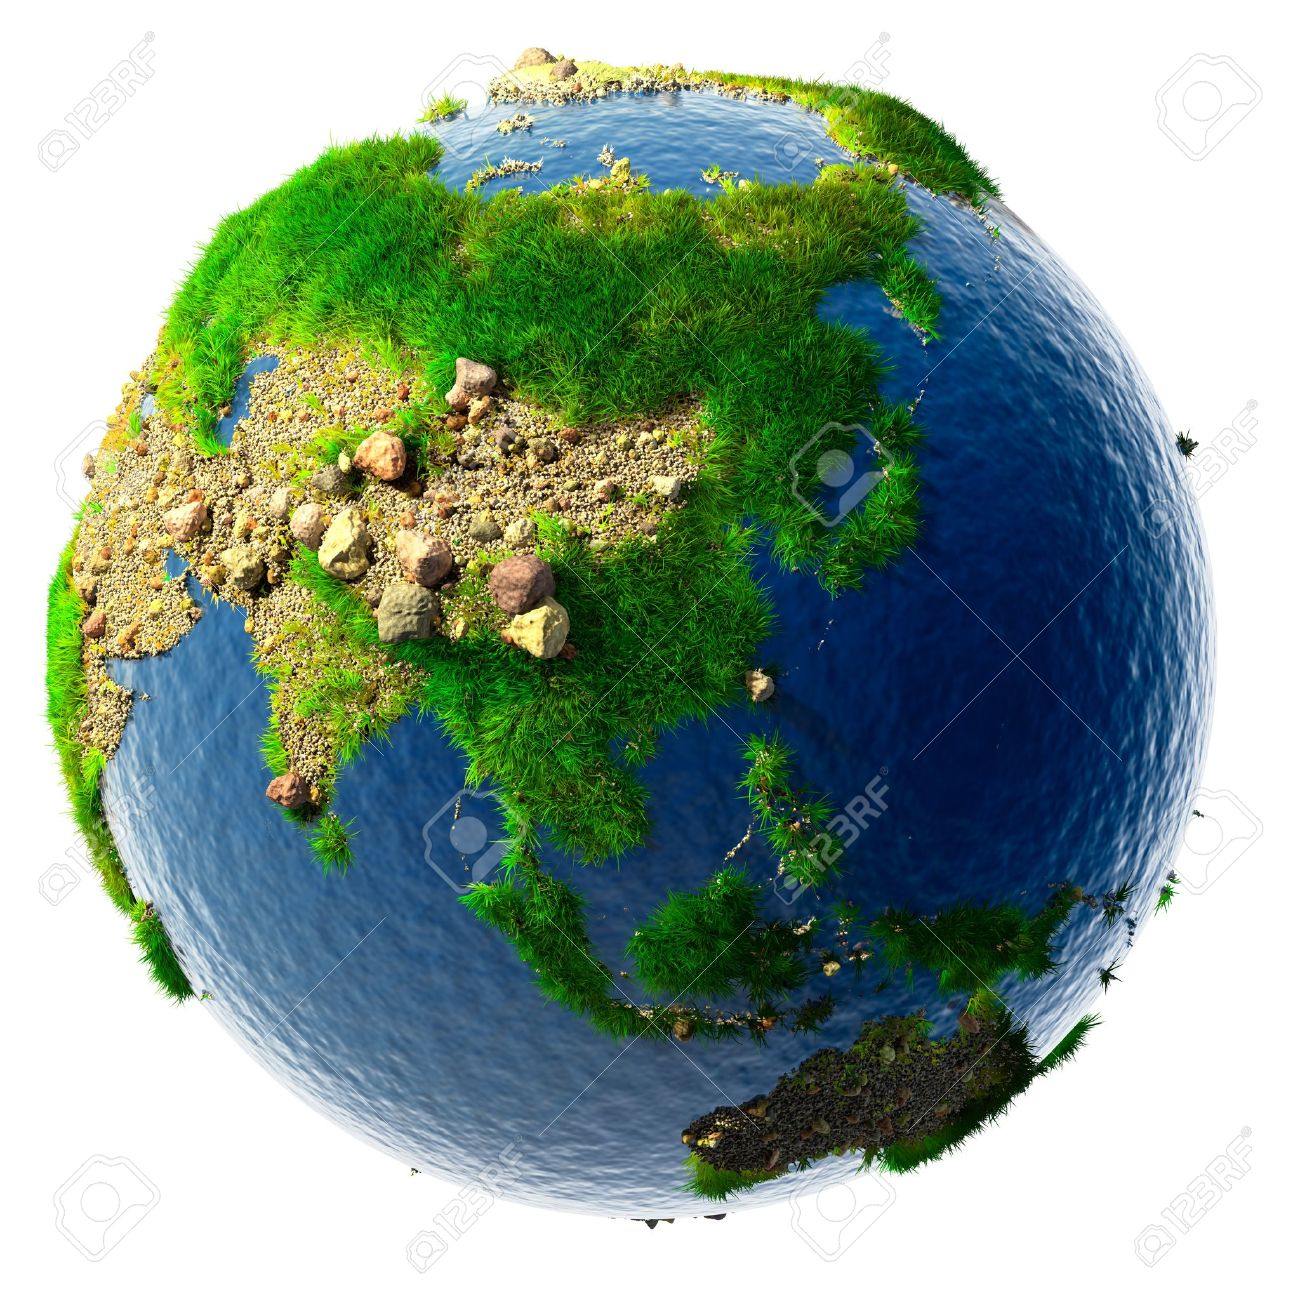 Detailed concept nature of the earth in miniature sandy deserts detailed concept nature of the earth in miniature sandy deserts rocky mountains grass gumiabroncs Image collections